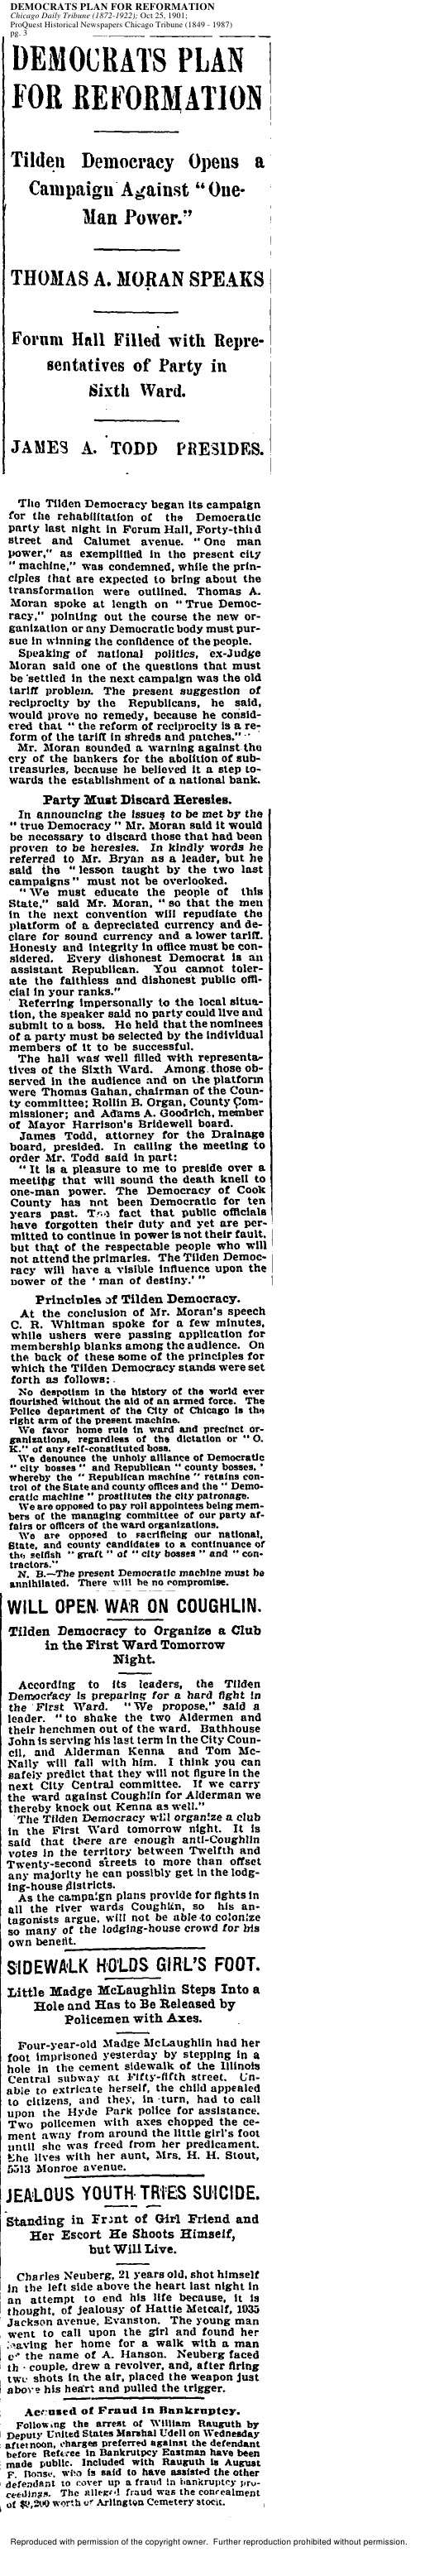 Title: Democrats Plan for Reformation Date: October 25, 1901 Source: Chicago Daily Tribune